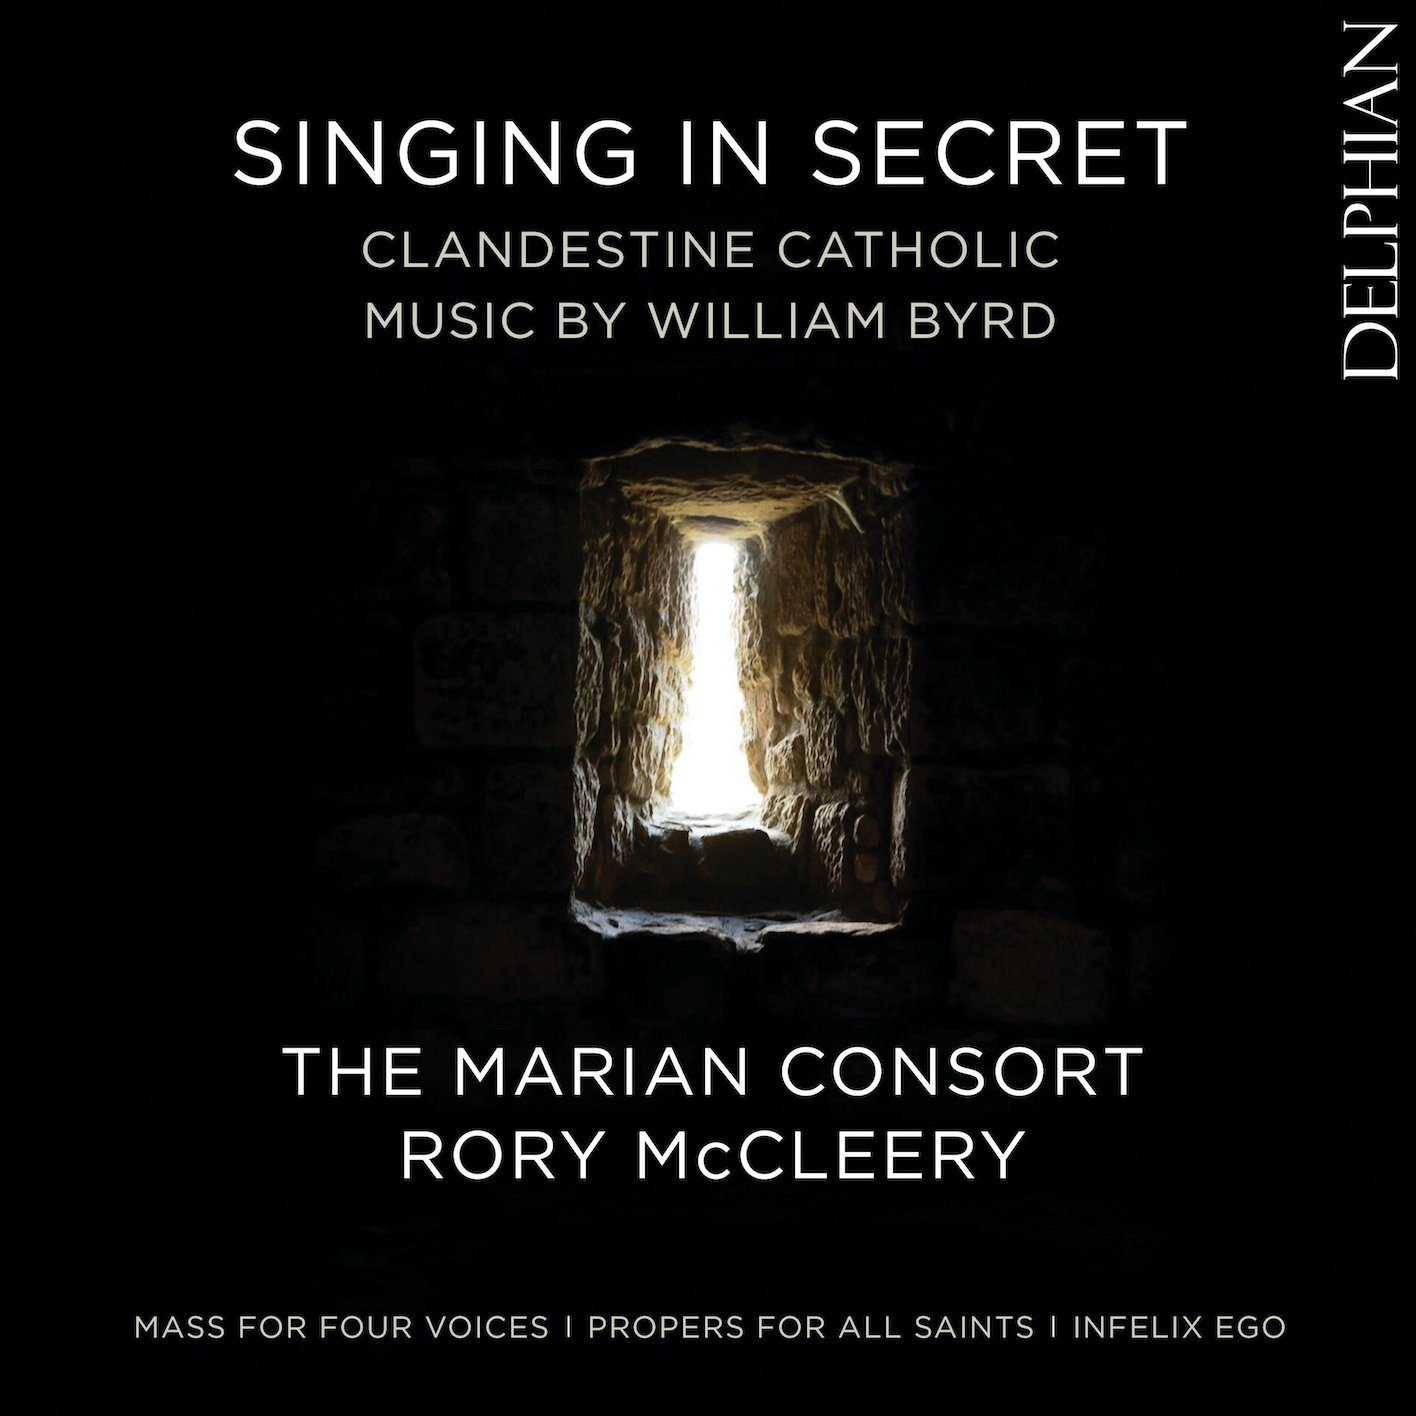 Singing In Secret: Clandestine Catholic Music by William Byrd CD Delphian Records